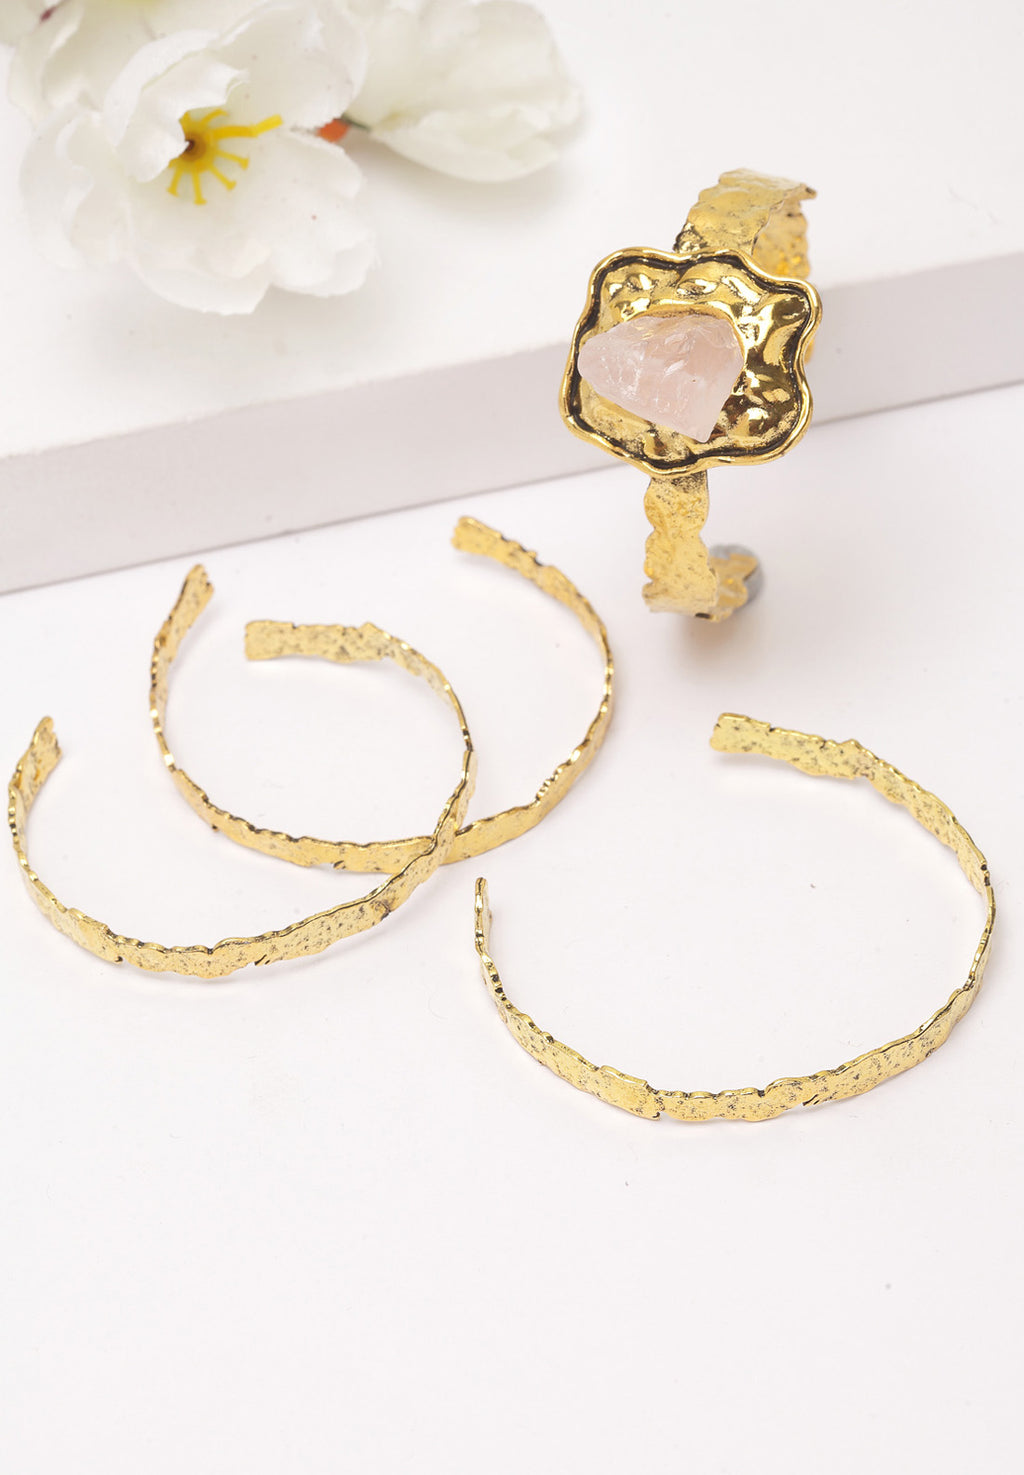 Avant-Garde Paris Metallic Gold Multi-layer Bracelet